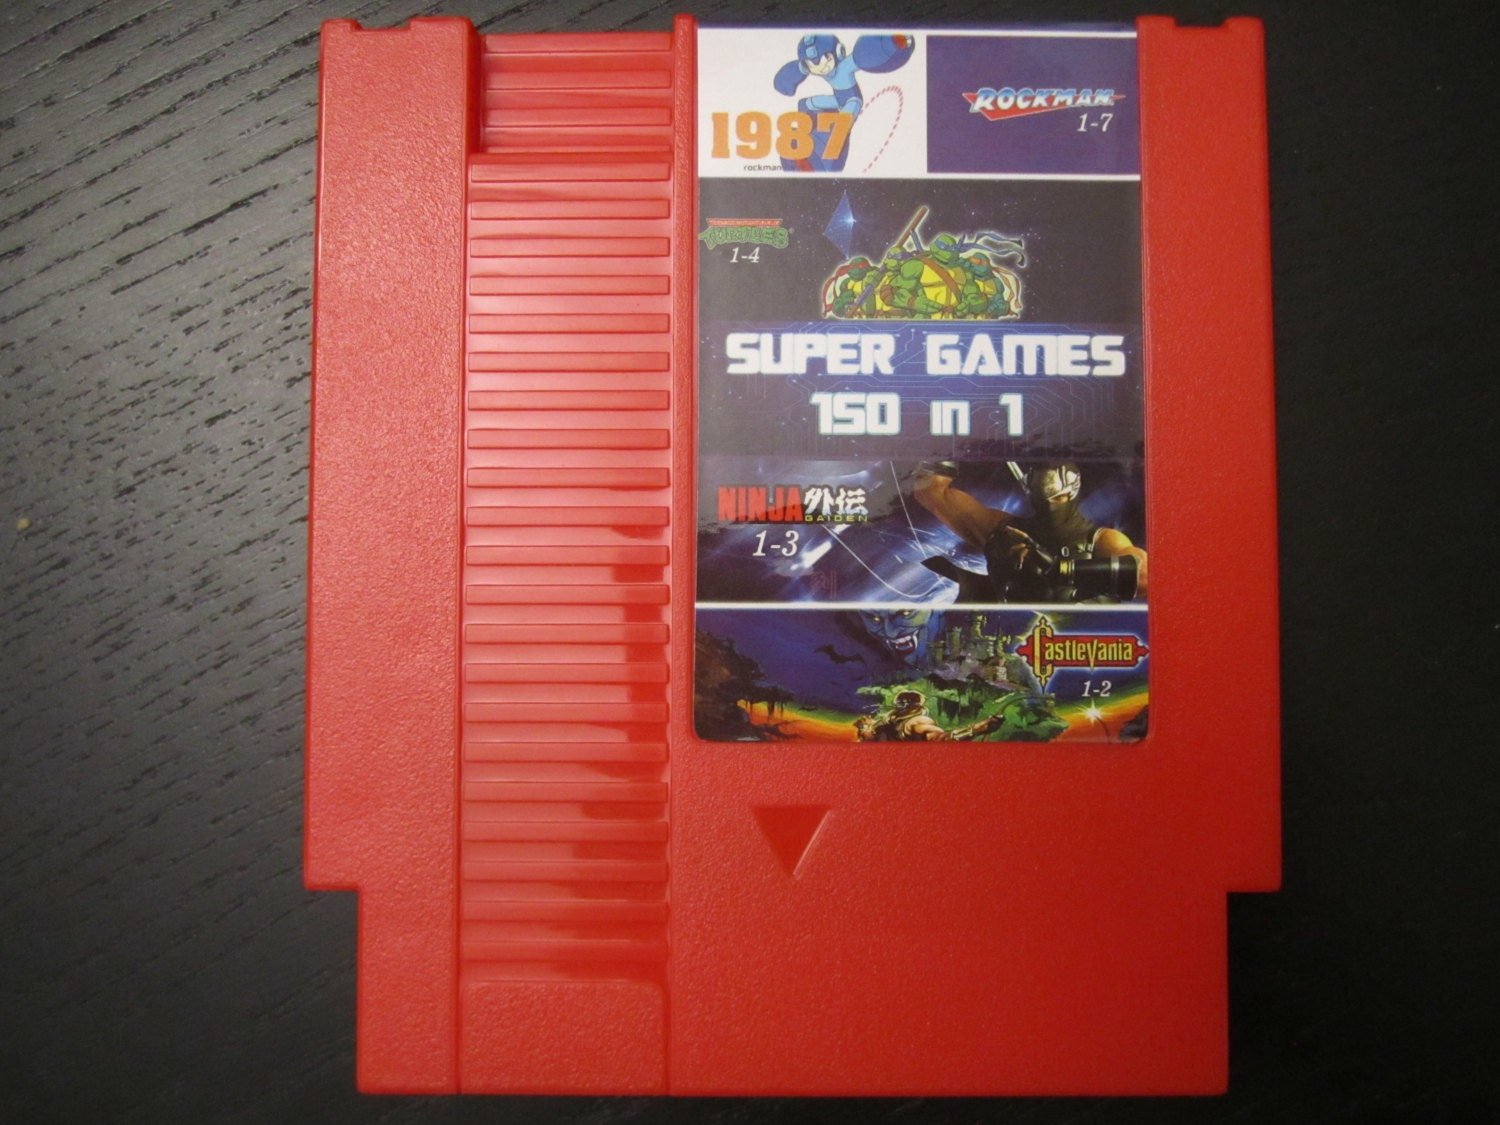 Super Games 150 in 1 Multicart Cartridge for Nintendo NES Tons | Etsy